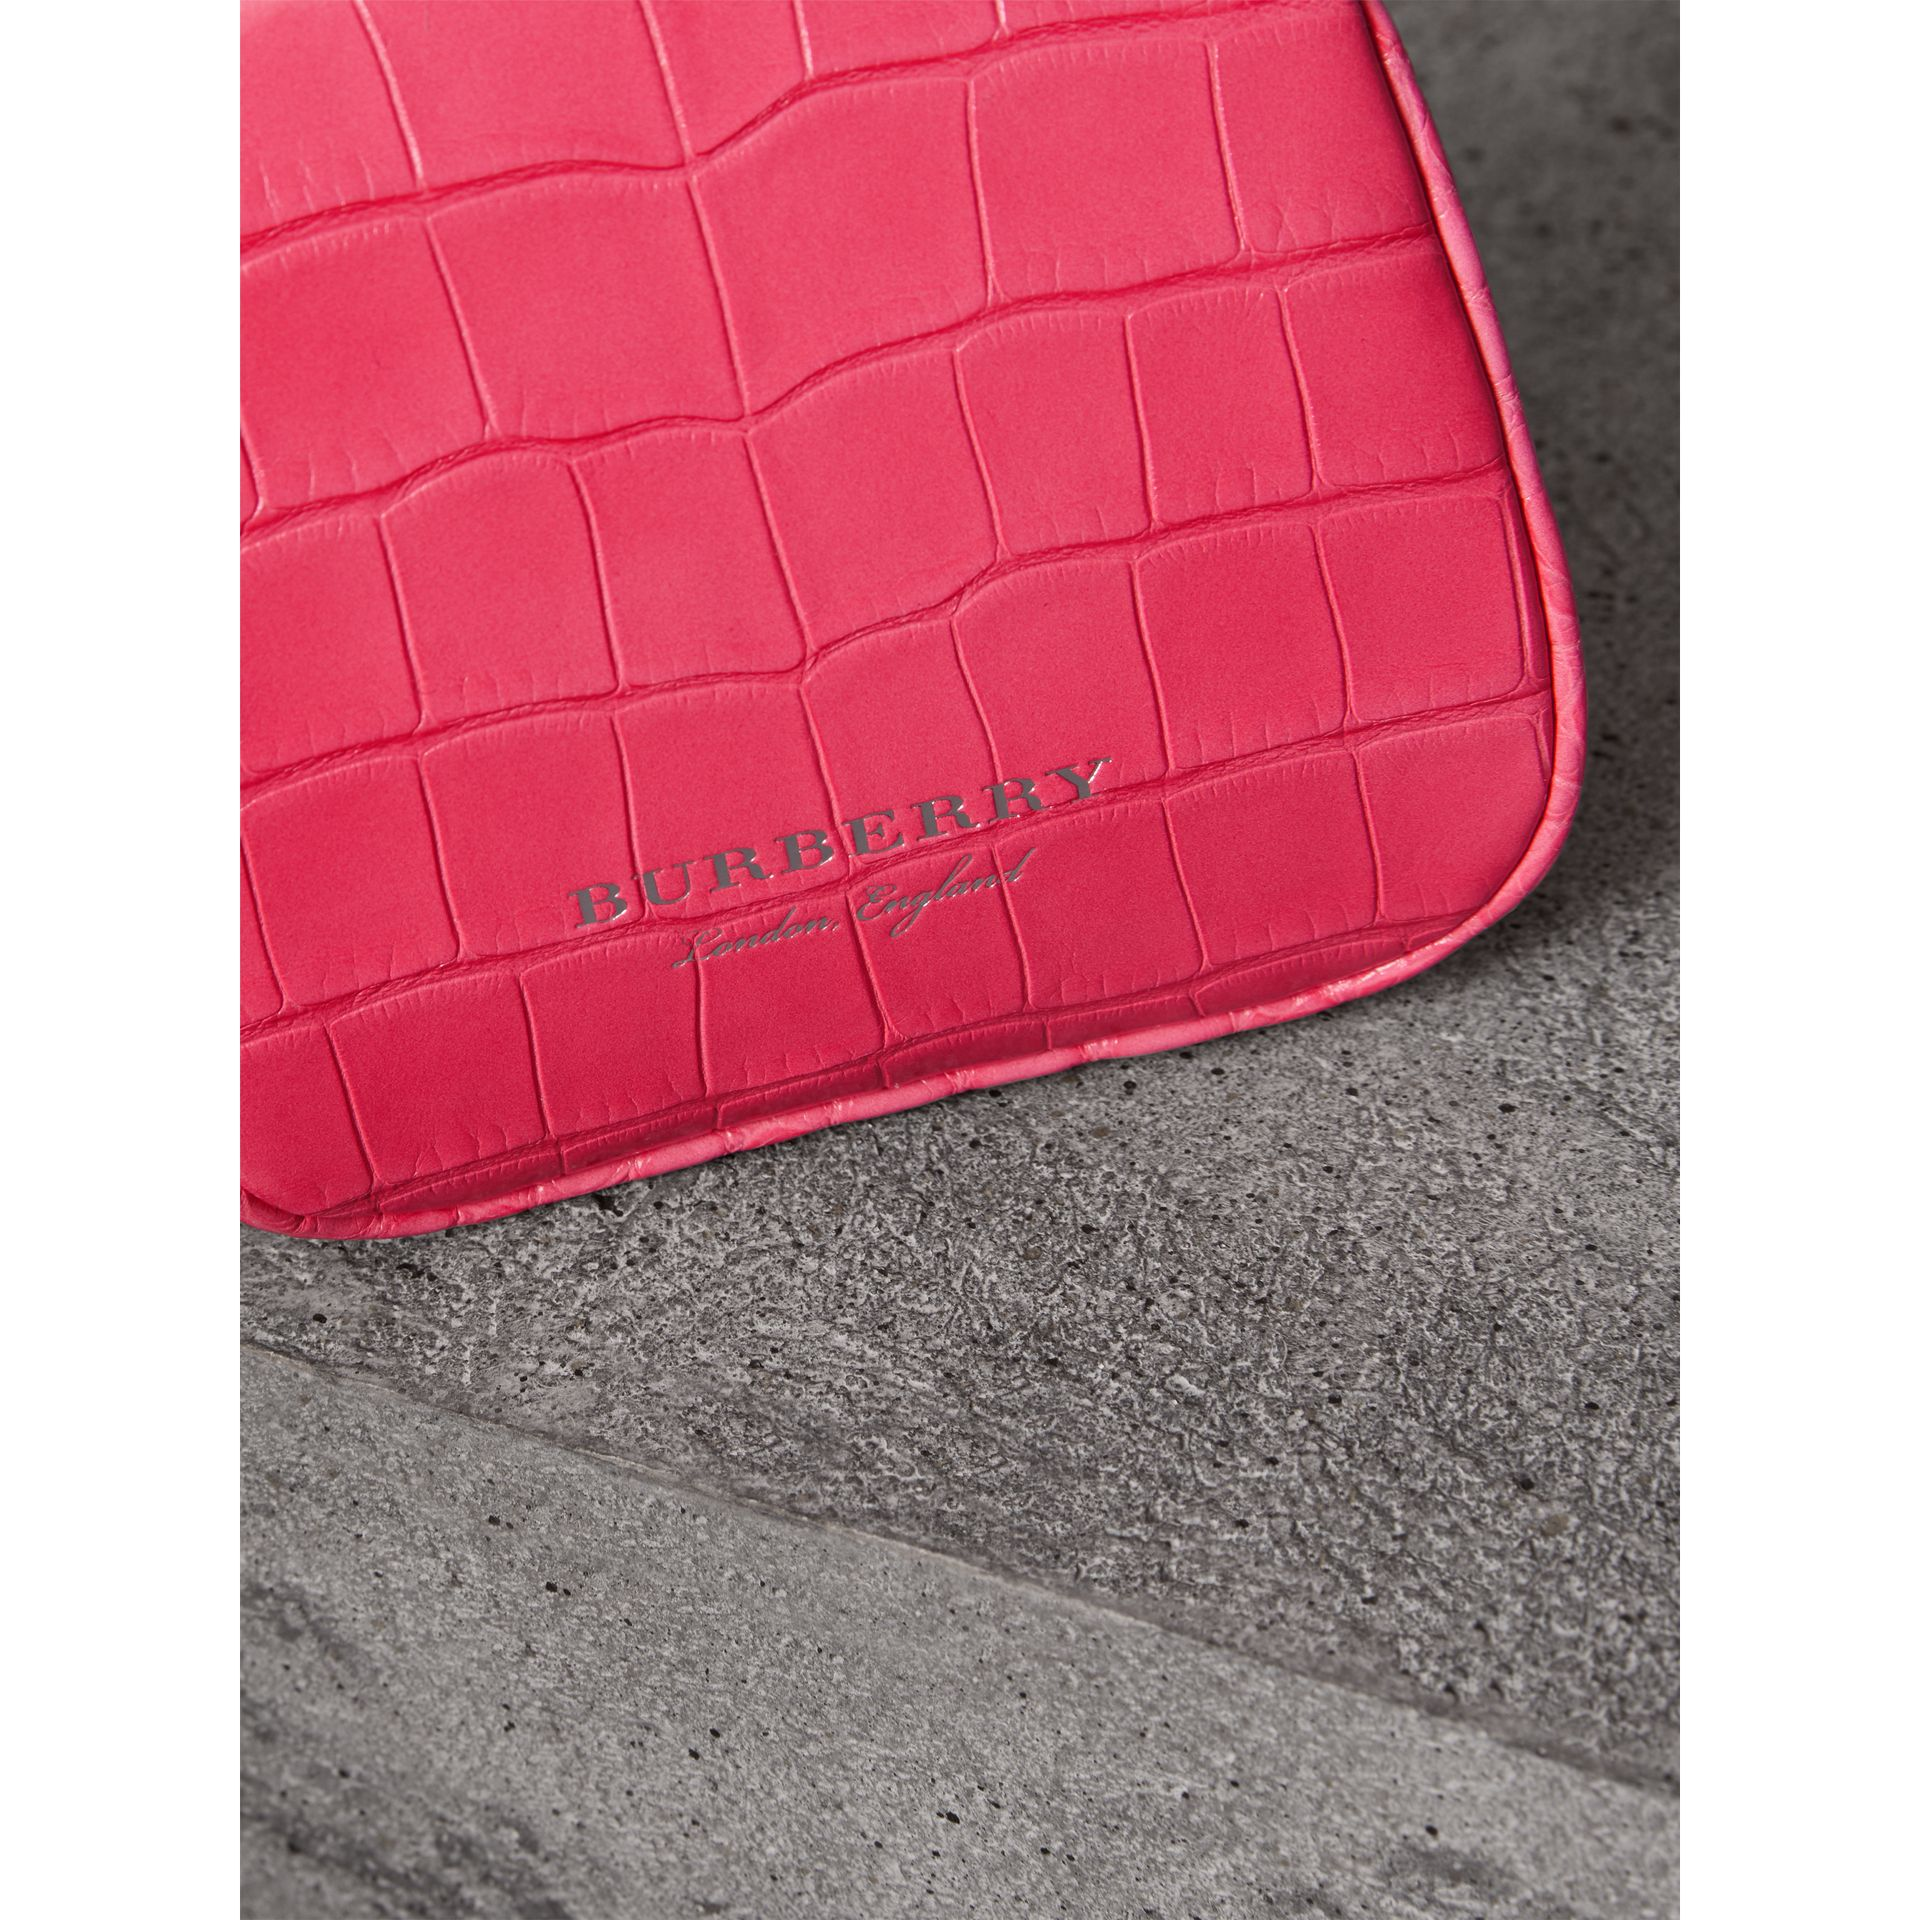 Mini sac porte-monnaie en alligator (Rose Néon) - Femme | Burberry - photo de la galerie 1